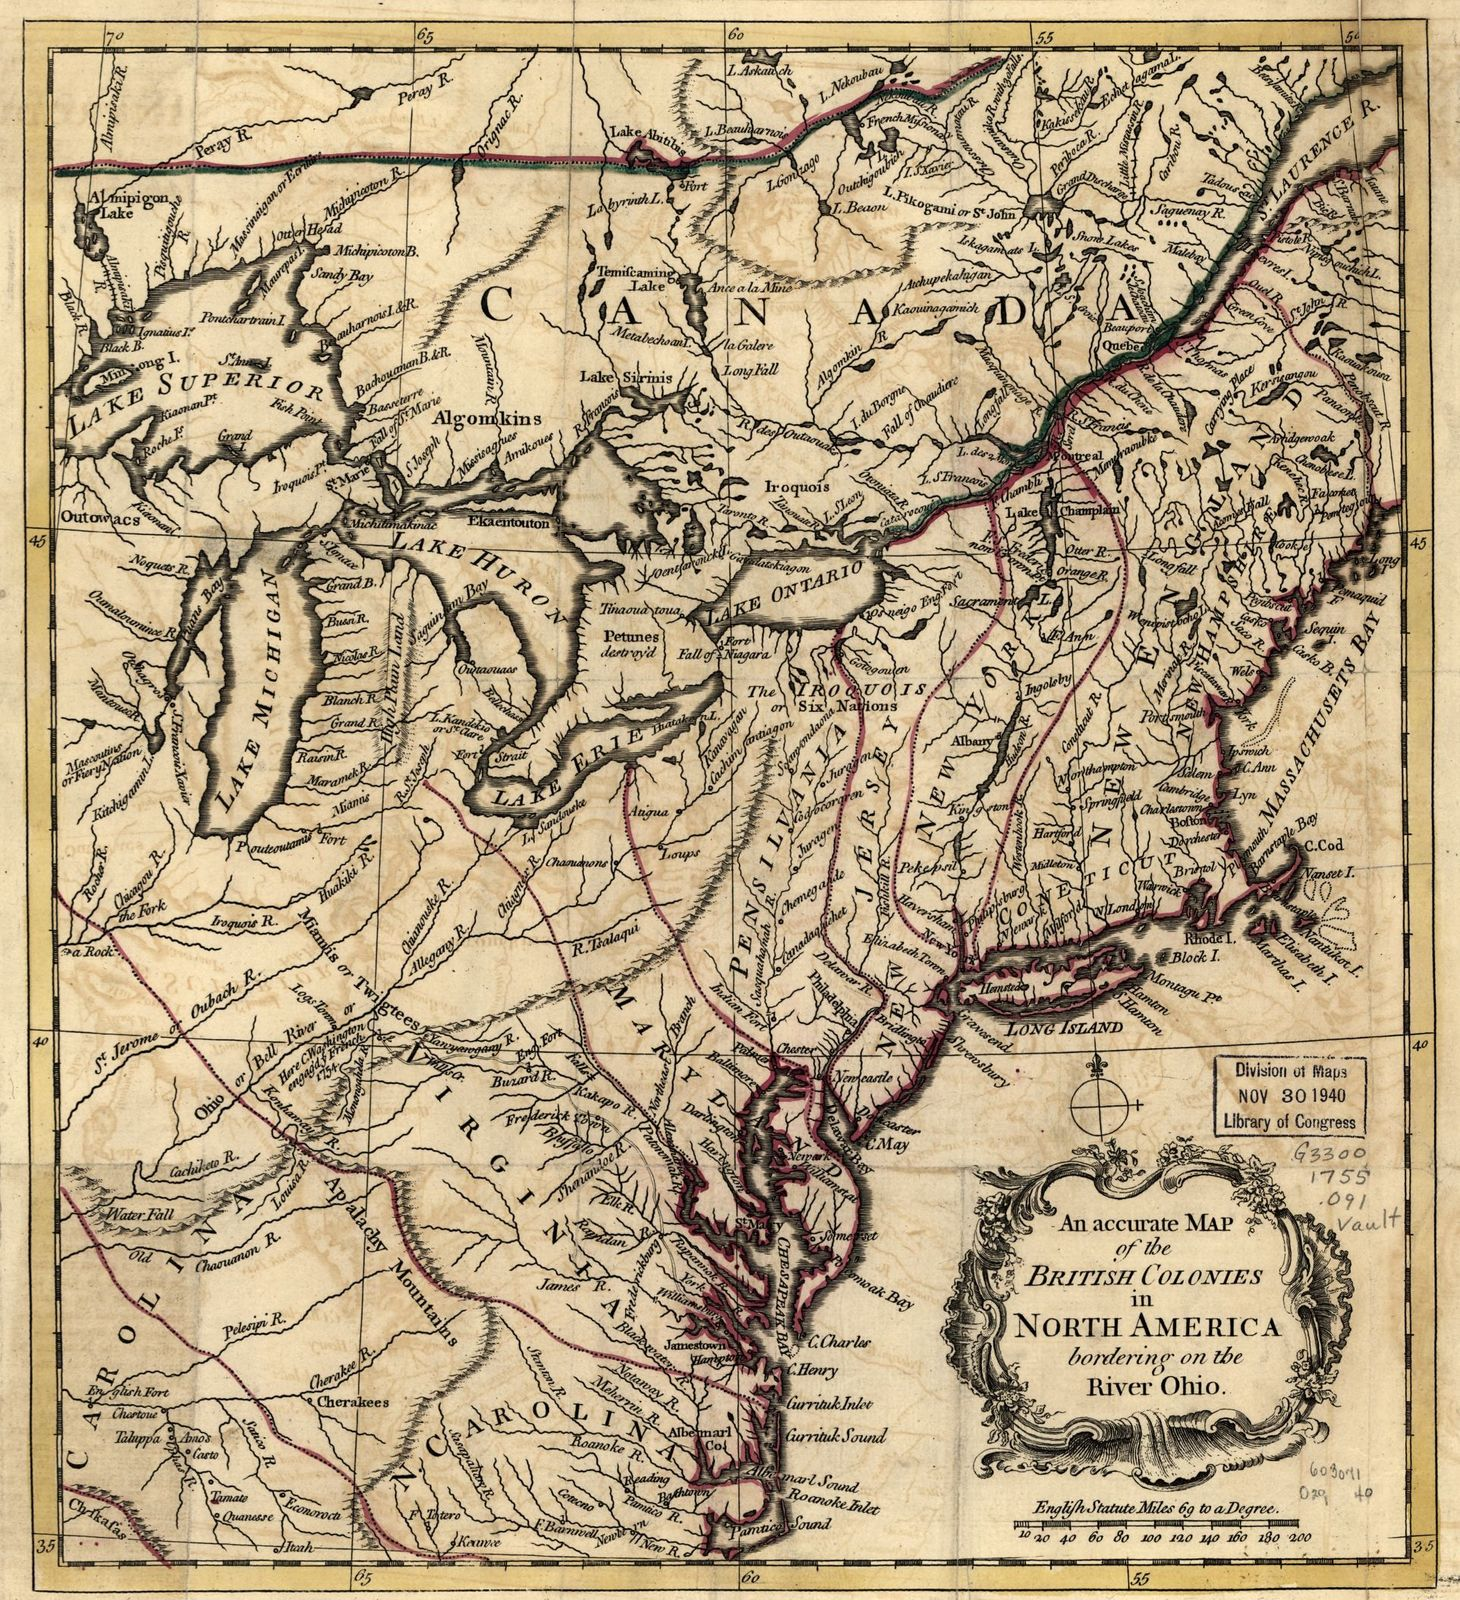 An accurate map of the British colonies in North America bordering on the river Ohio.